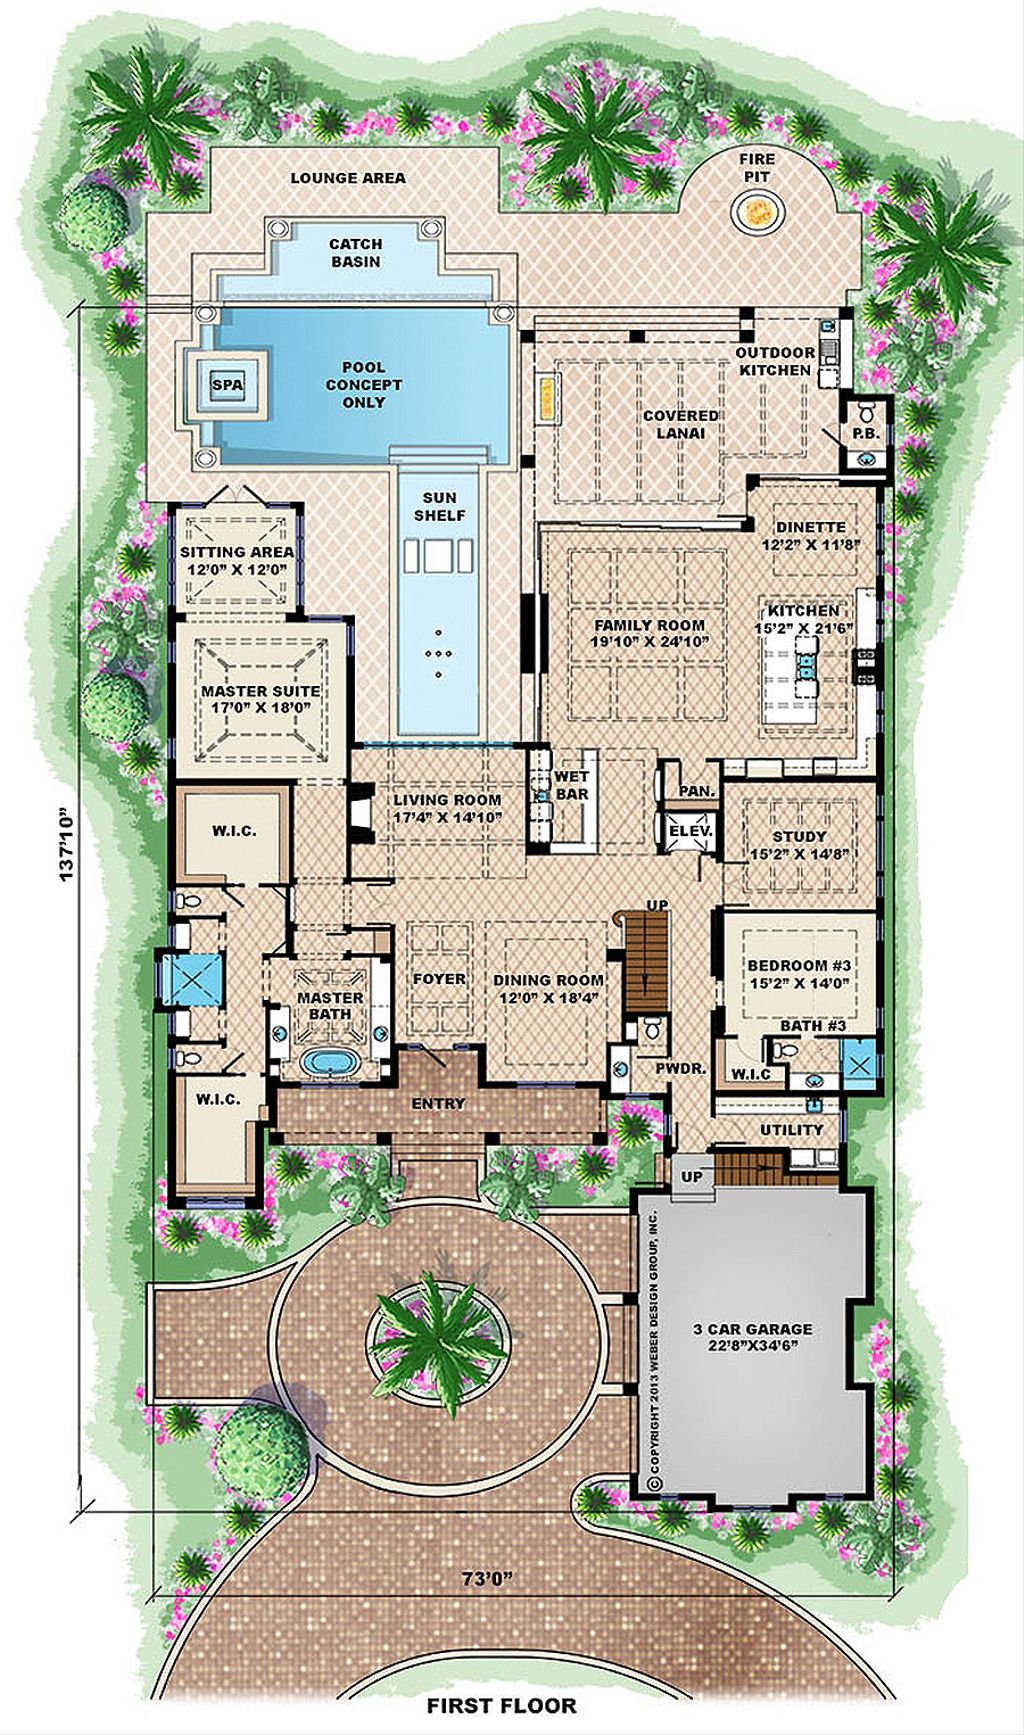 beach style house plan 6 beds 6 5 baths 10605 sq ft plan 27 462 rh houseplans com 6 bedroom house plans with basement 6 bedroom house plans nz